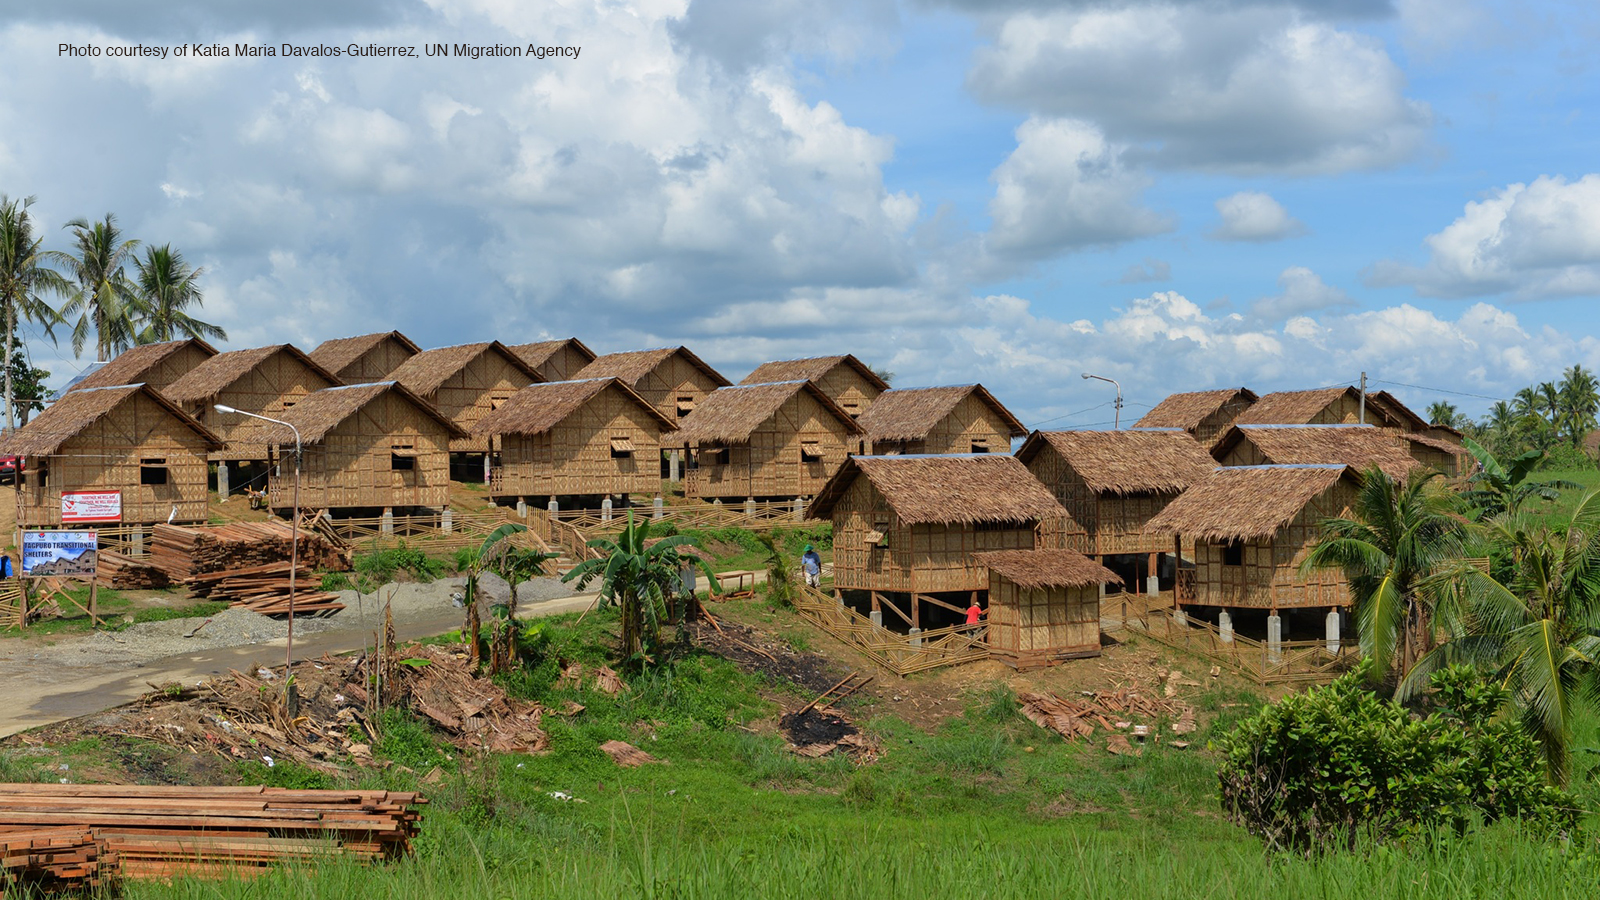 Philippines landscape with thatched huts